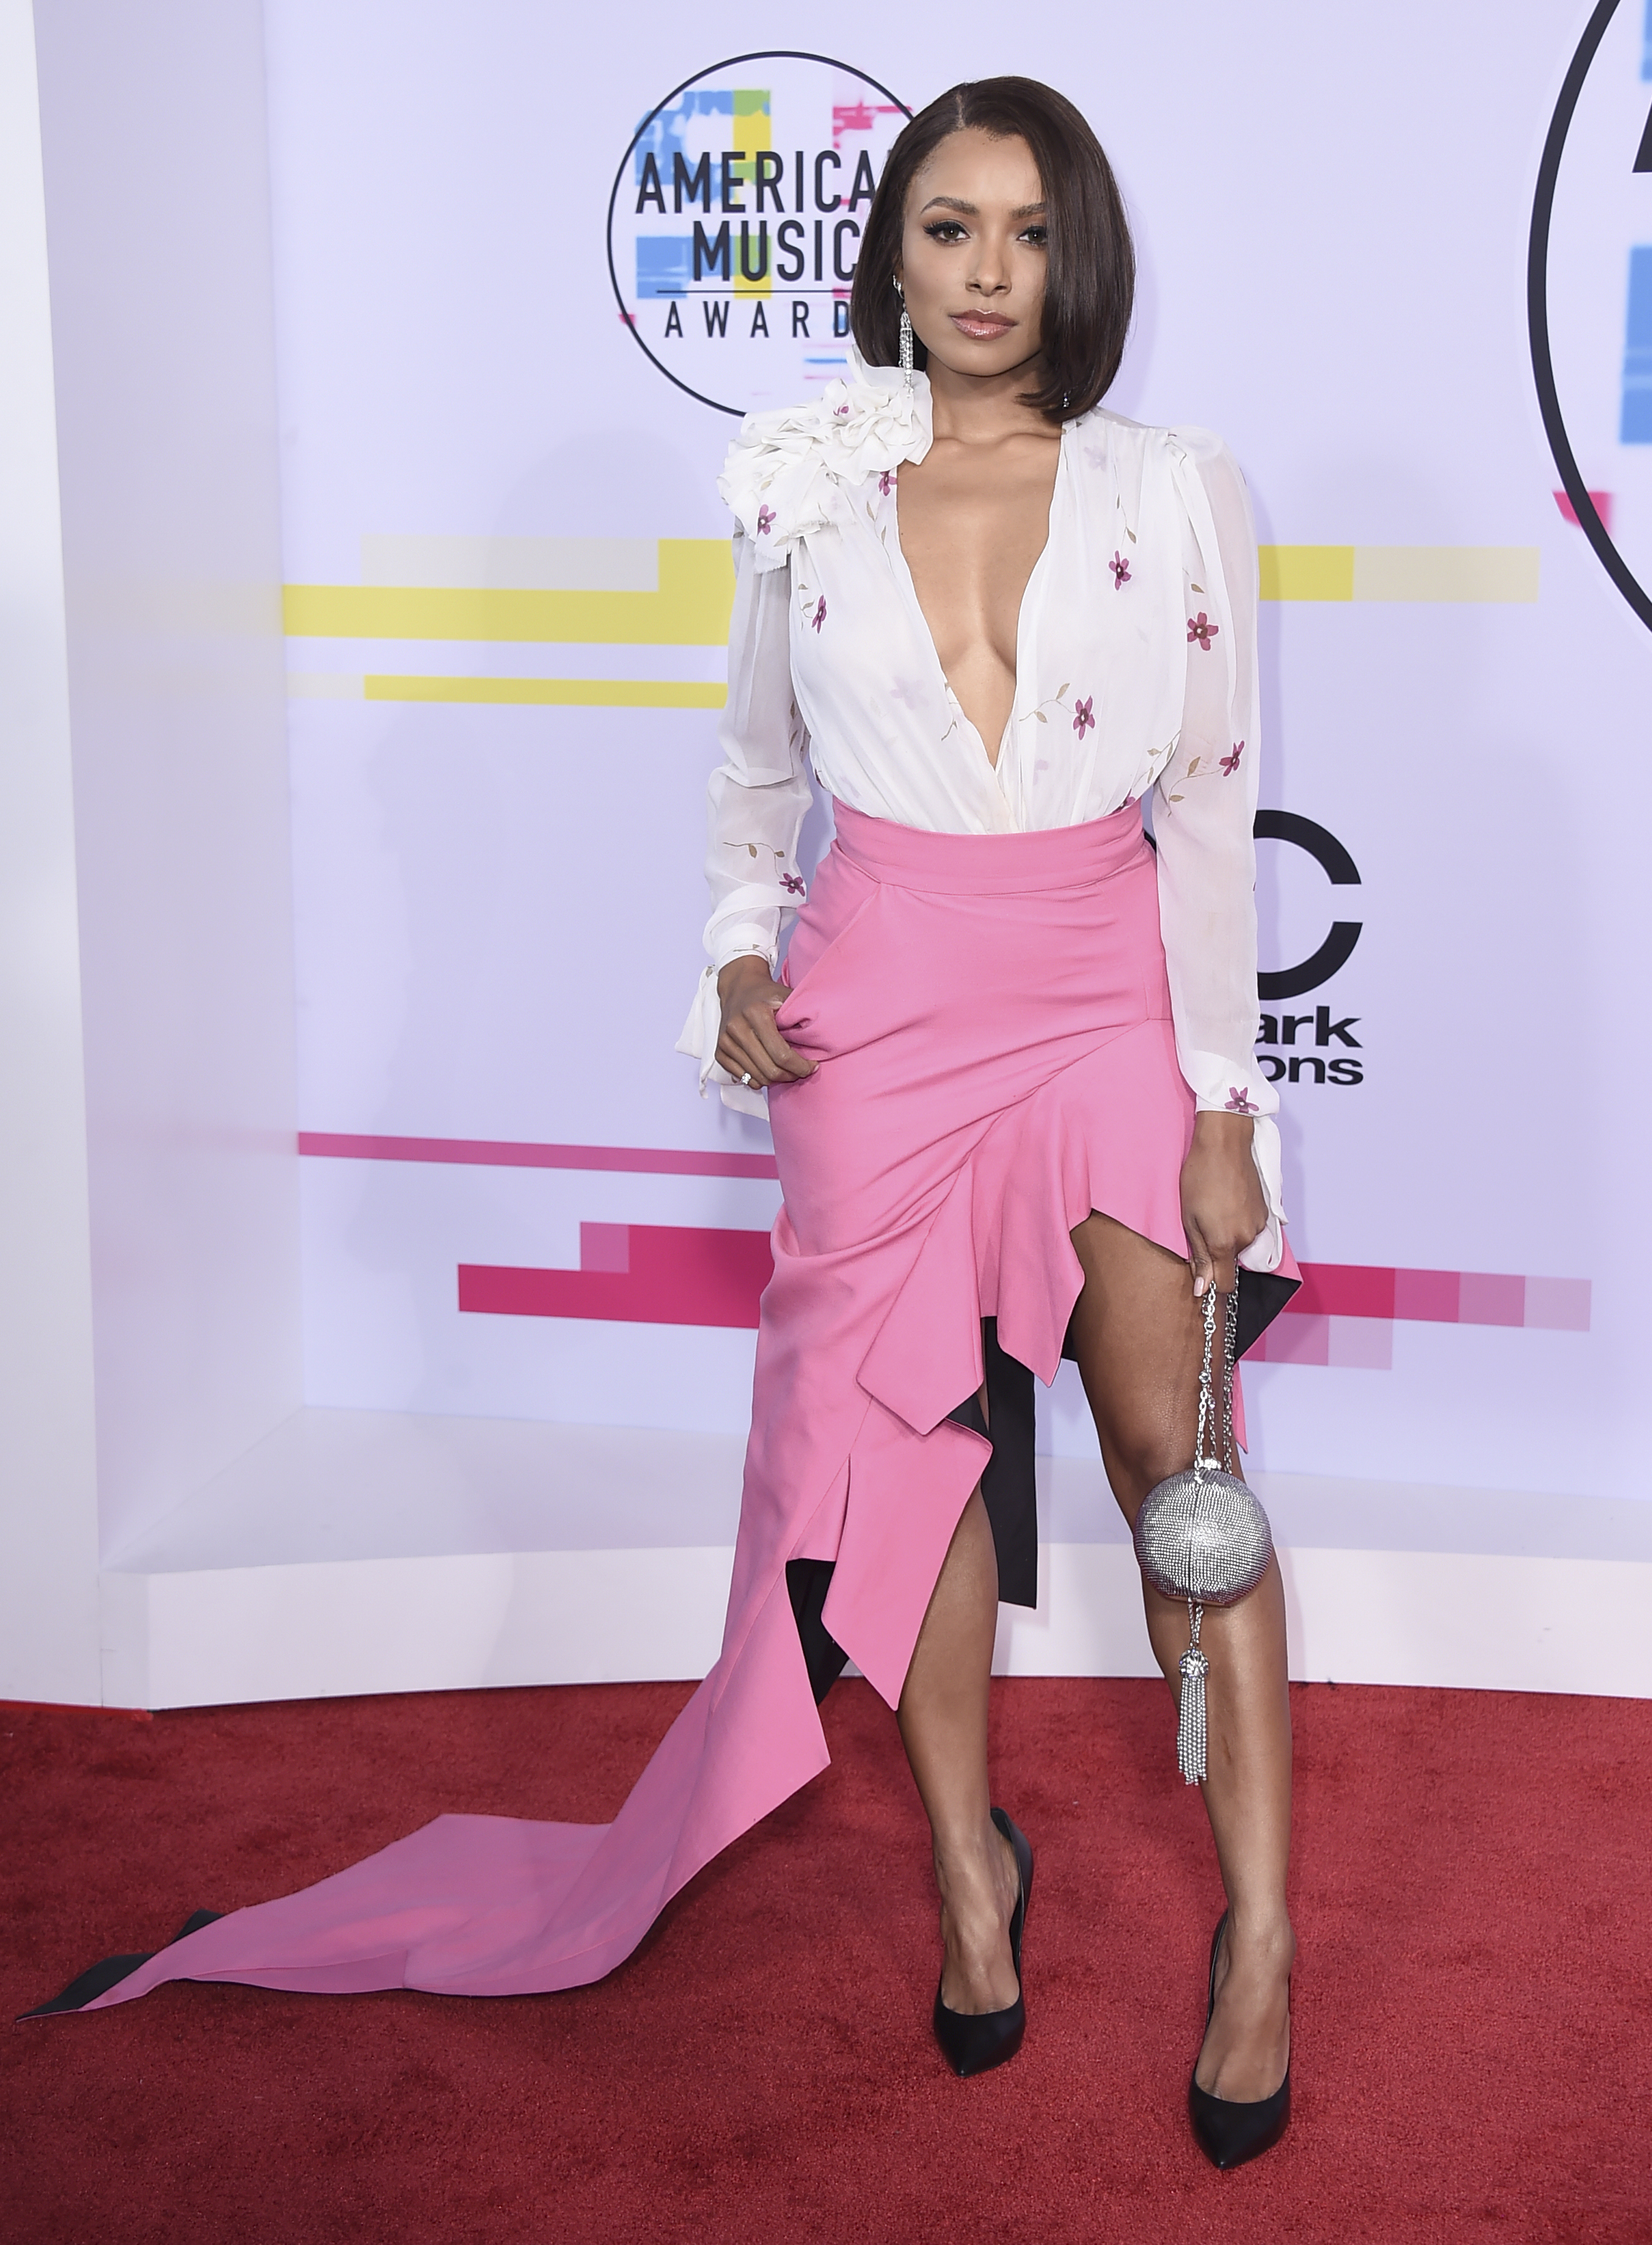 <div class='meta'><div class='origin-logo' data-origin='none'></div><span class='caption-text' data-credit='Jordan Strauss/Invision/AP'>Kat Graham arrives at the American Music Awards at the Microsoft Theater on Sunday, Nov. 19, 2017, in Los Angeles.</span></div>